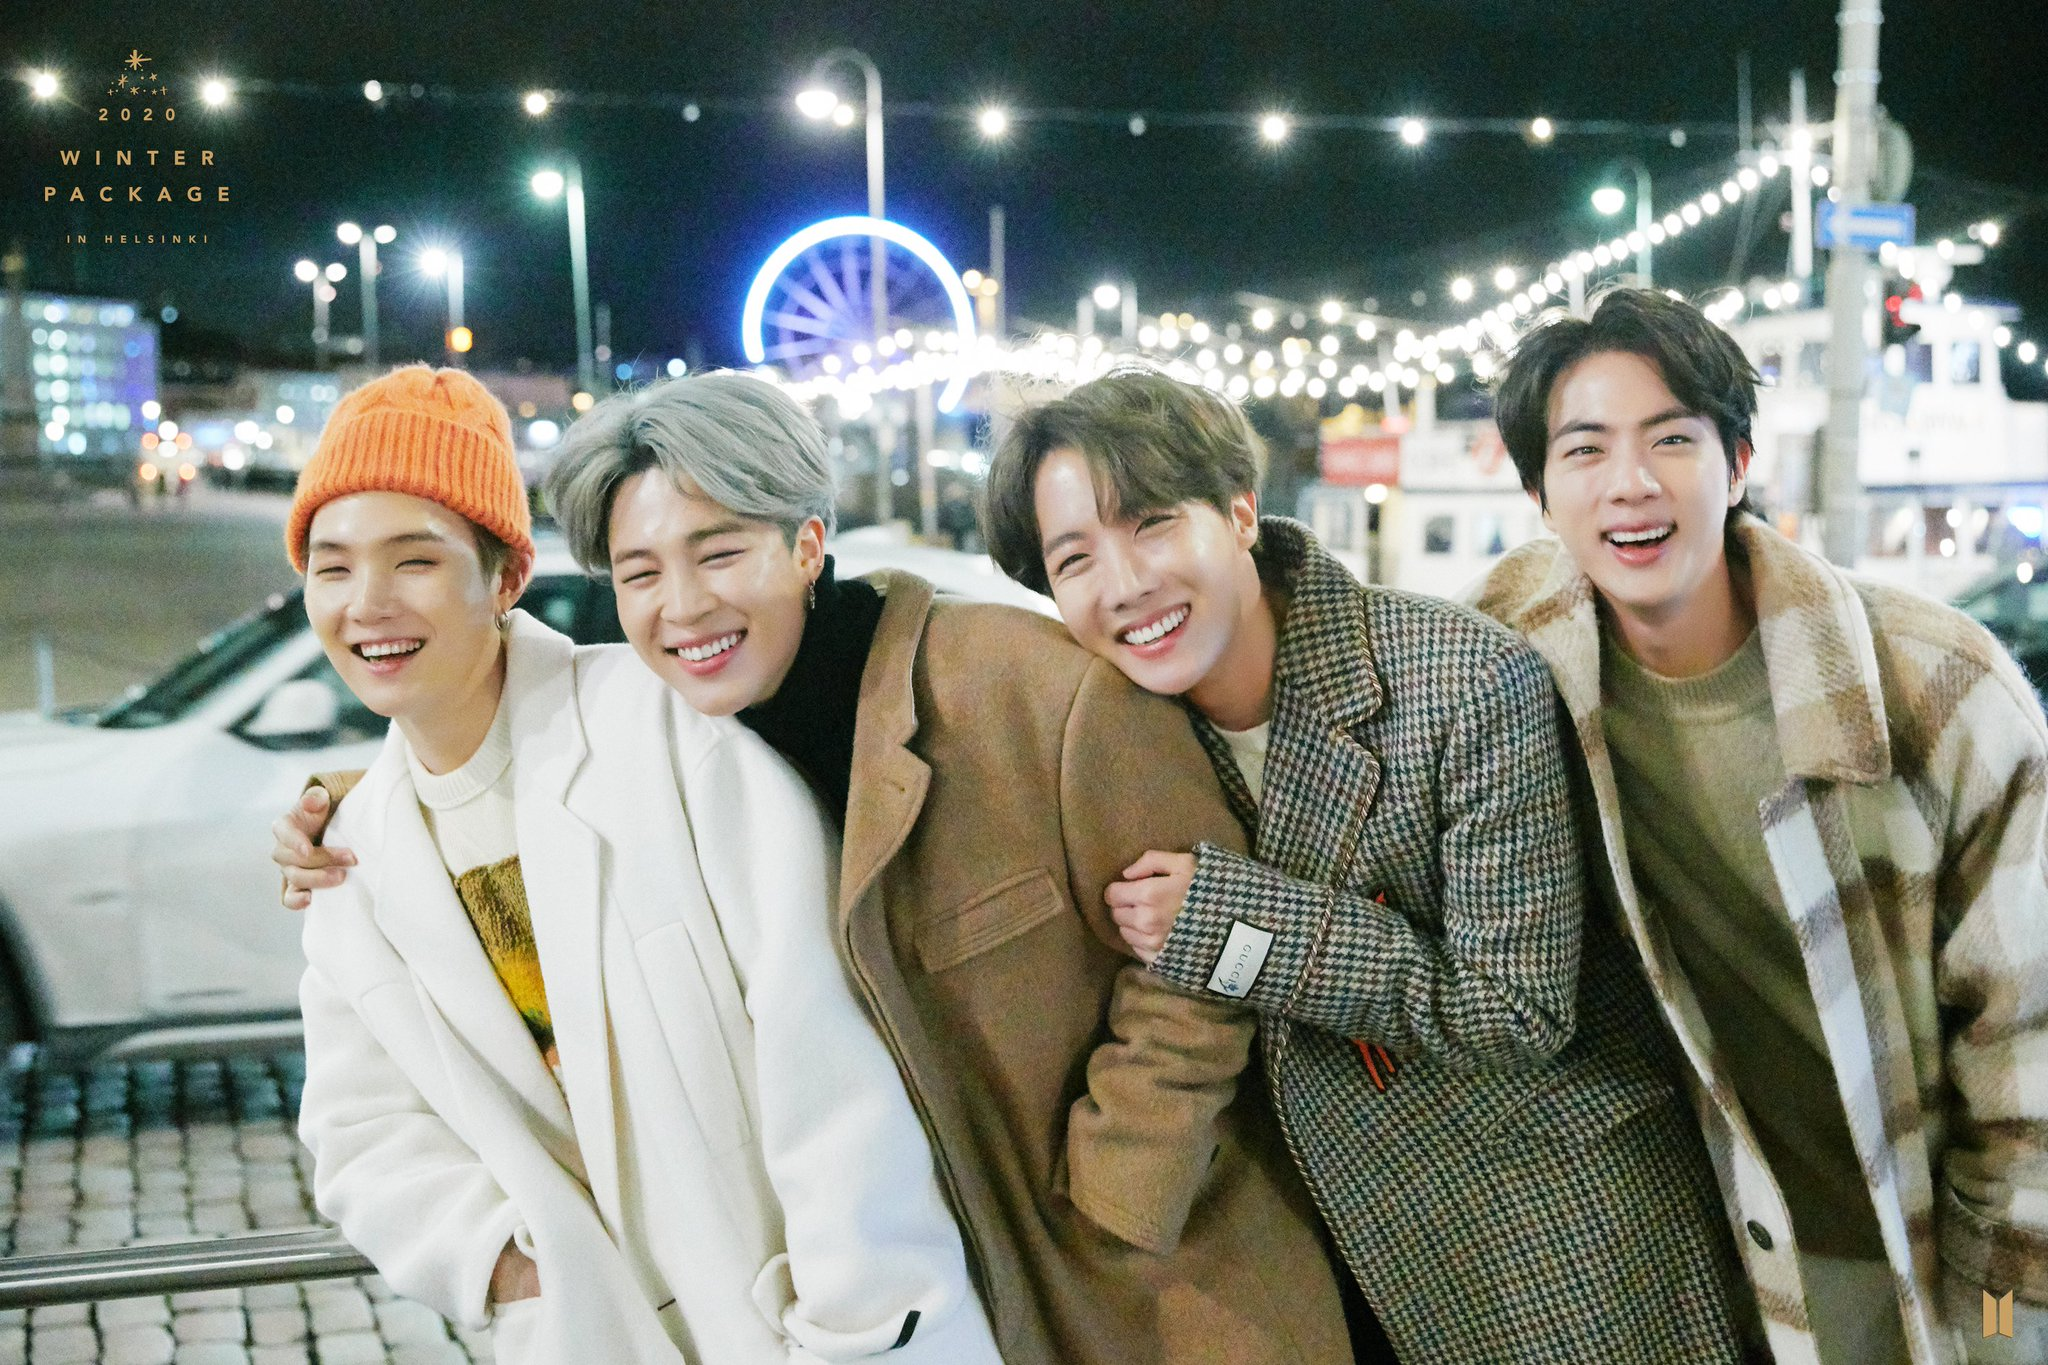 Bts Official On Twitter Bts 2020 Winter Package Preview Cuts Https T Co Unzaom5eus